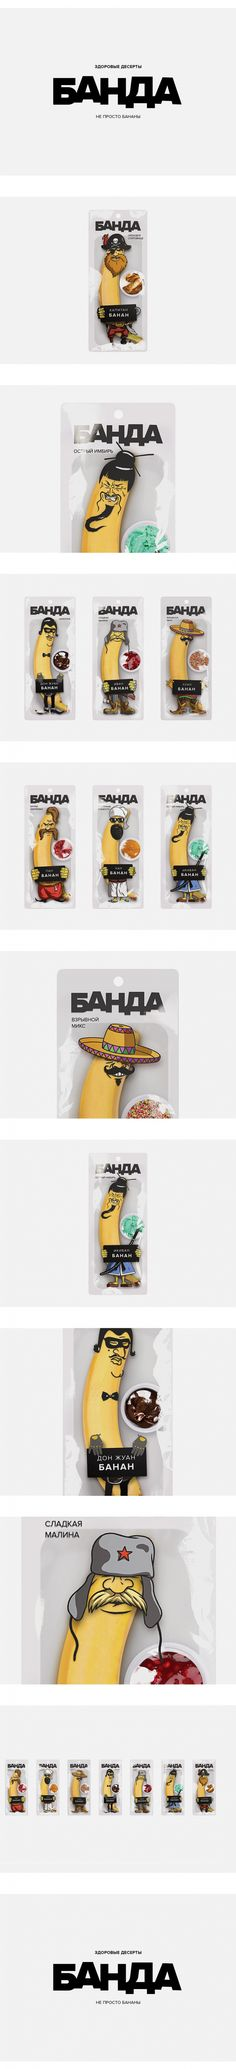 """FAKESTIVAL. Банда (= Banda) packaging smile file. Banana characters packaging. Banana never looked that fun to me ever before. Clever for kids who don't like banana but need it. All made out of mashed banana and each is complemented with a different ingredient / flavour: peanut butter / jam / honey, etc. """"Healthy desserts. BANDA. Not just bananas."""" : ) PD"""